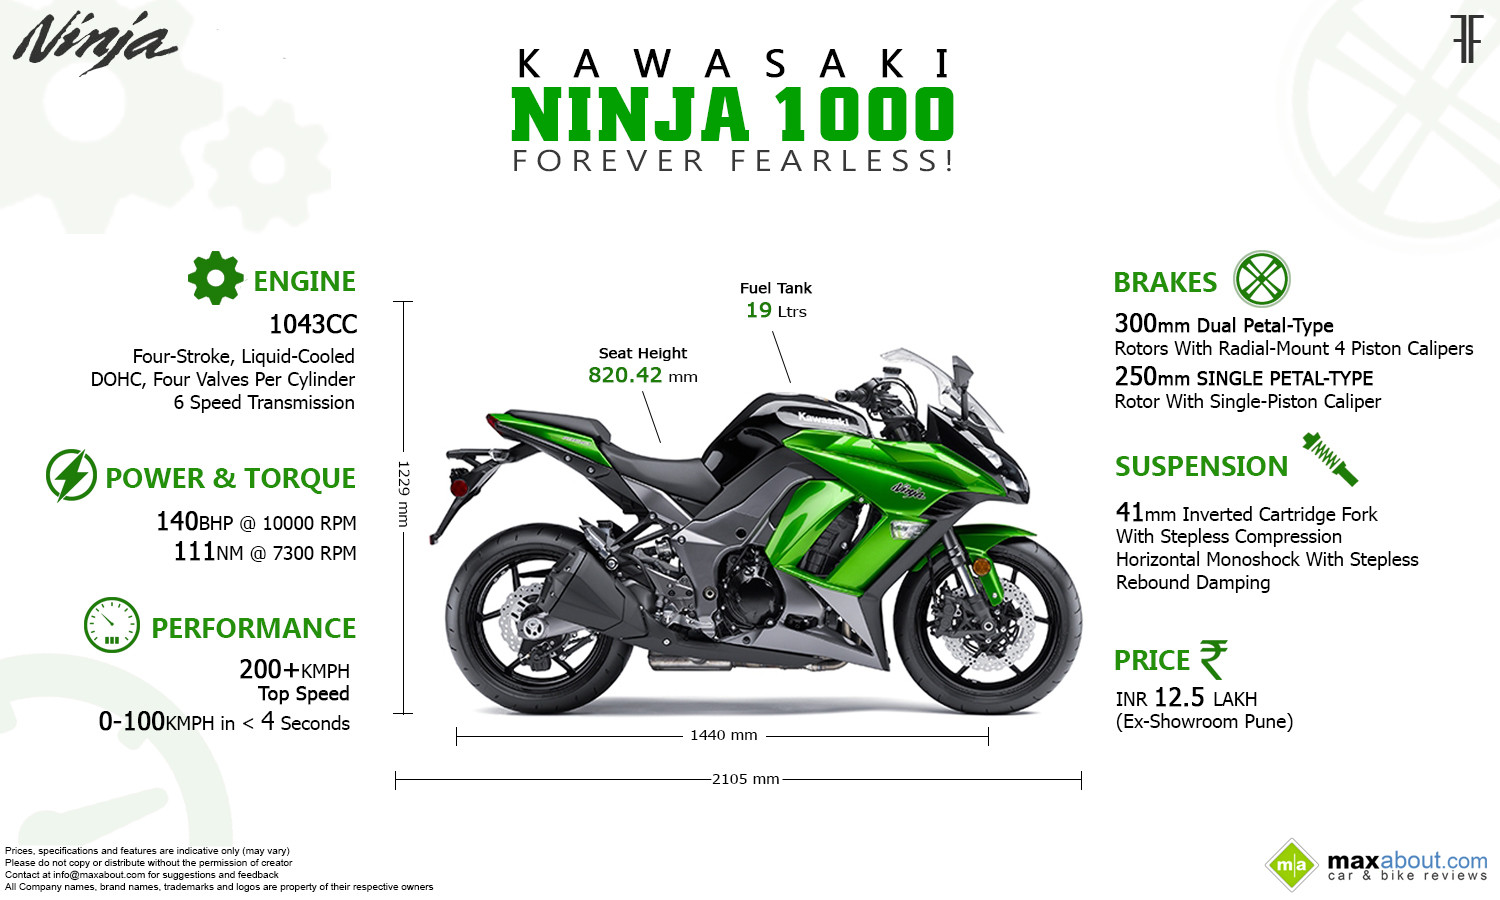 2014 Kawasaki Ninja 1000: All You Need to Know Infographic